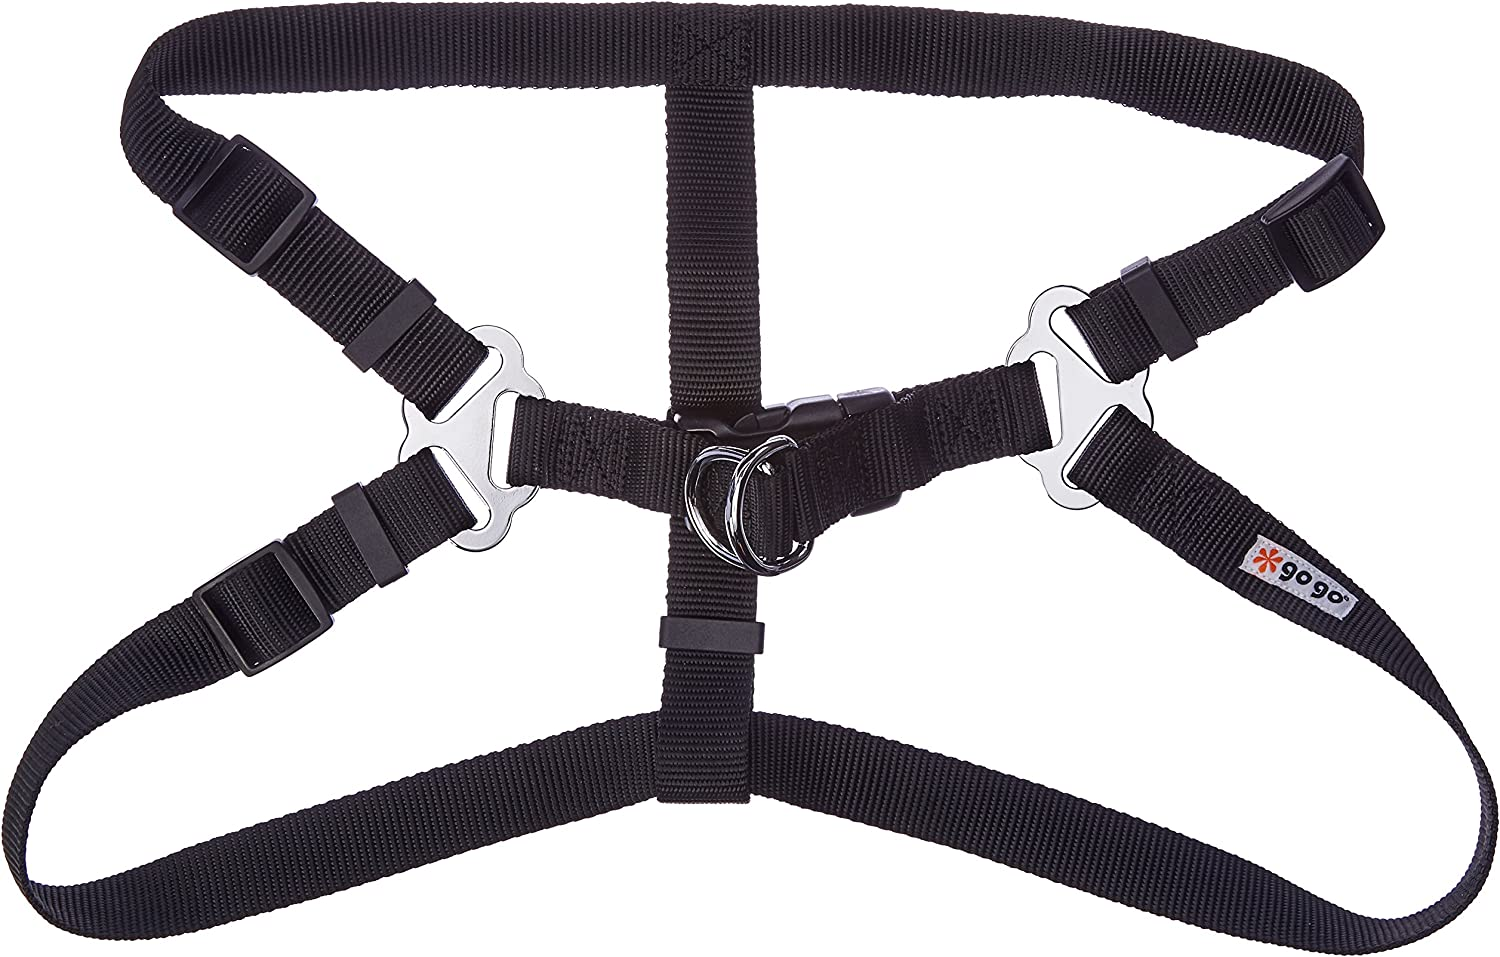 GoGo Pet Products Comfy Nylon 1Inch Adjustable Easy Pet Harness, Large, Black